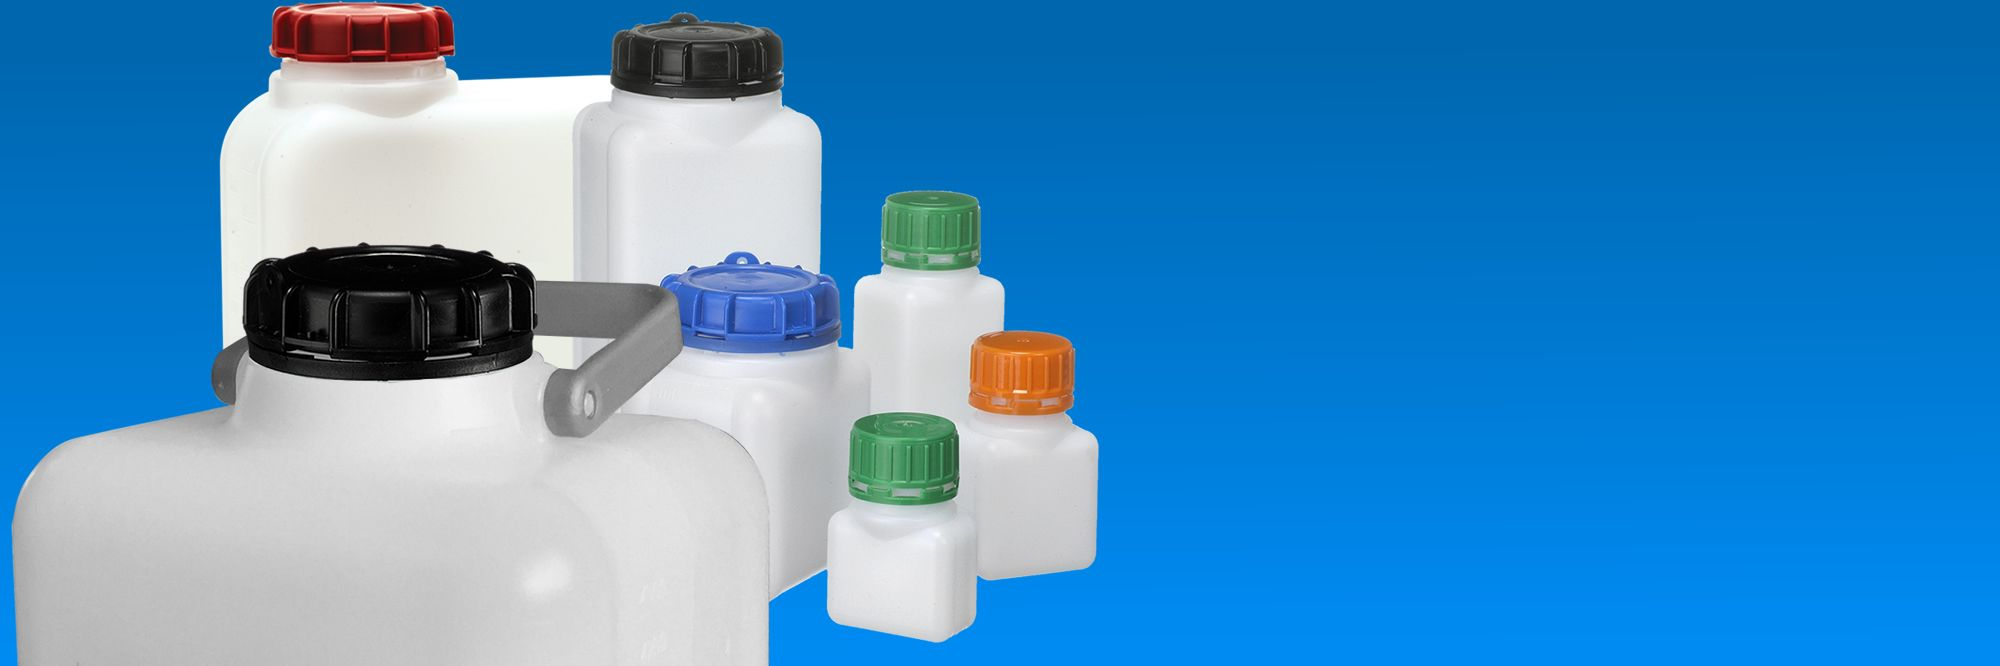 Heavy Duty Bottles3